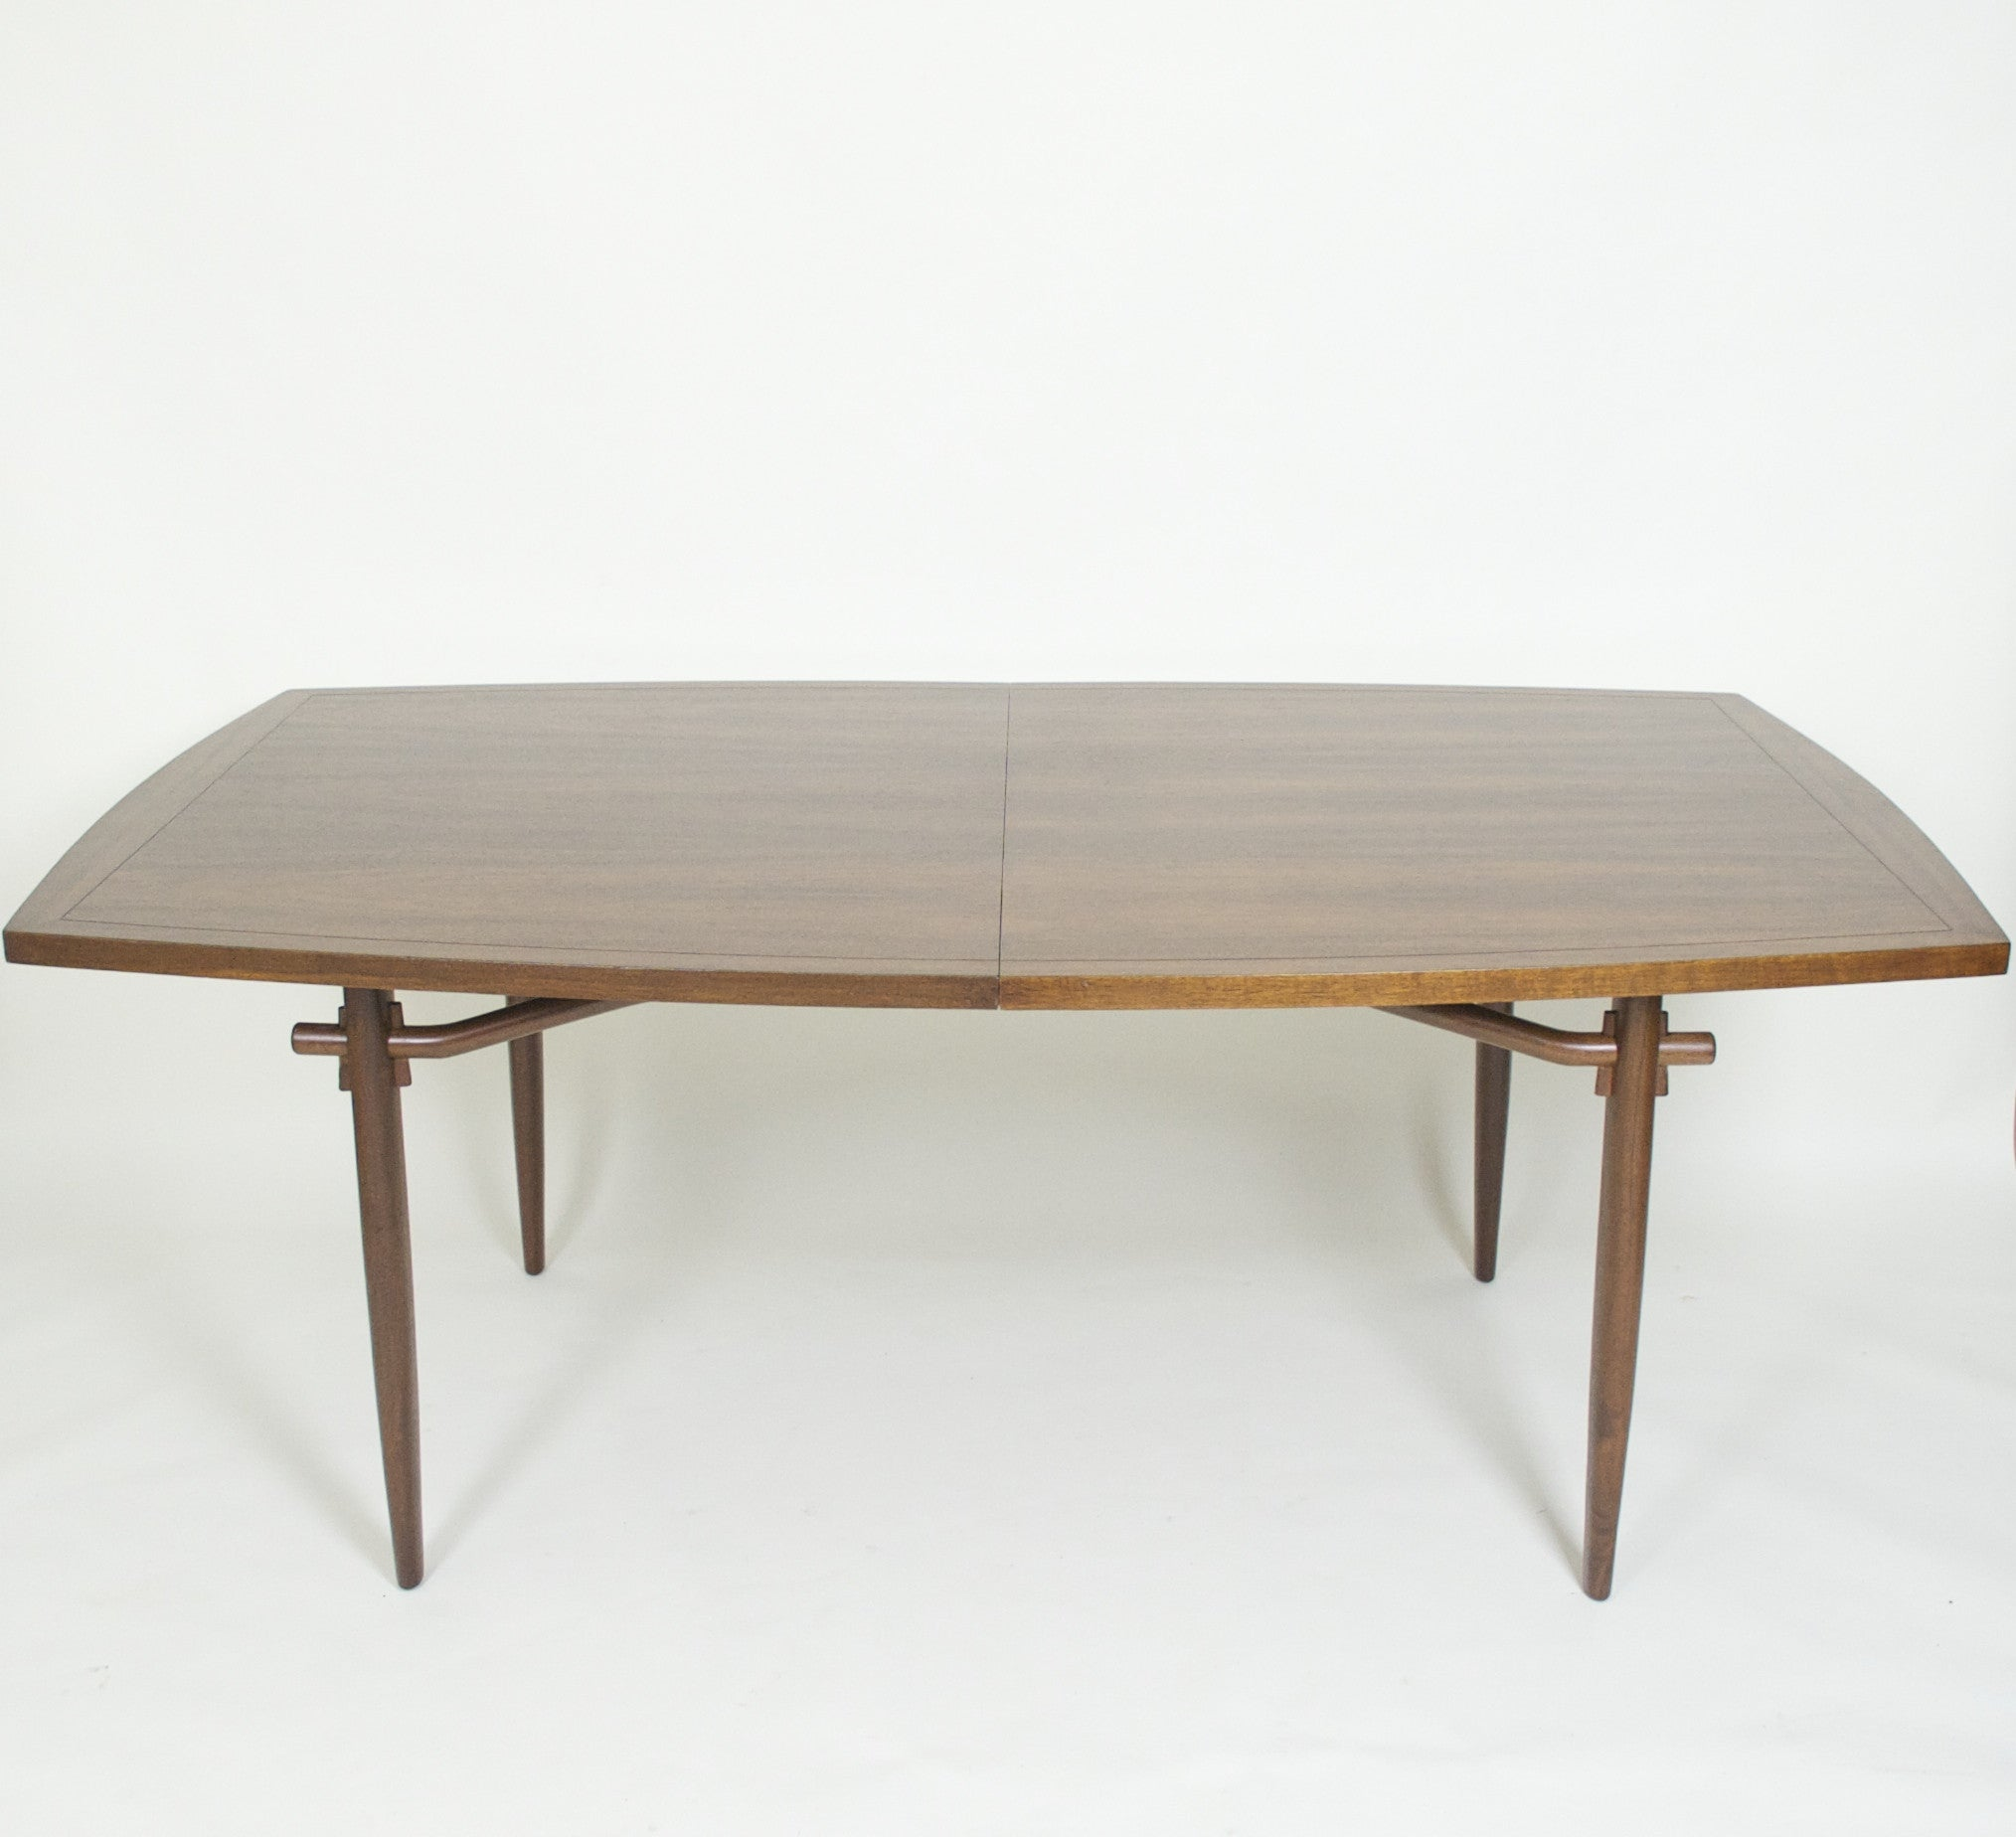 george nakashima for widdicomb sundra dining table with leaf d